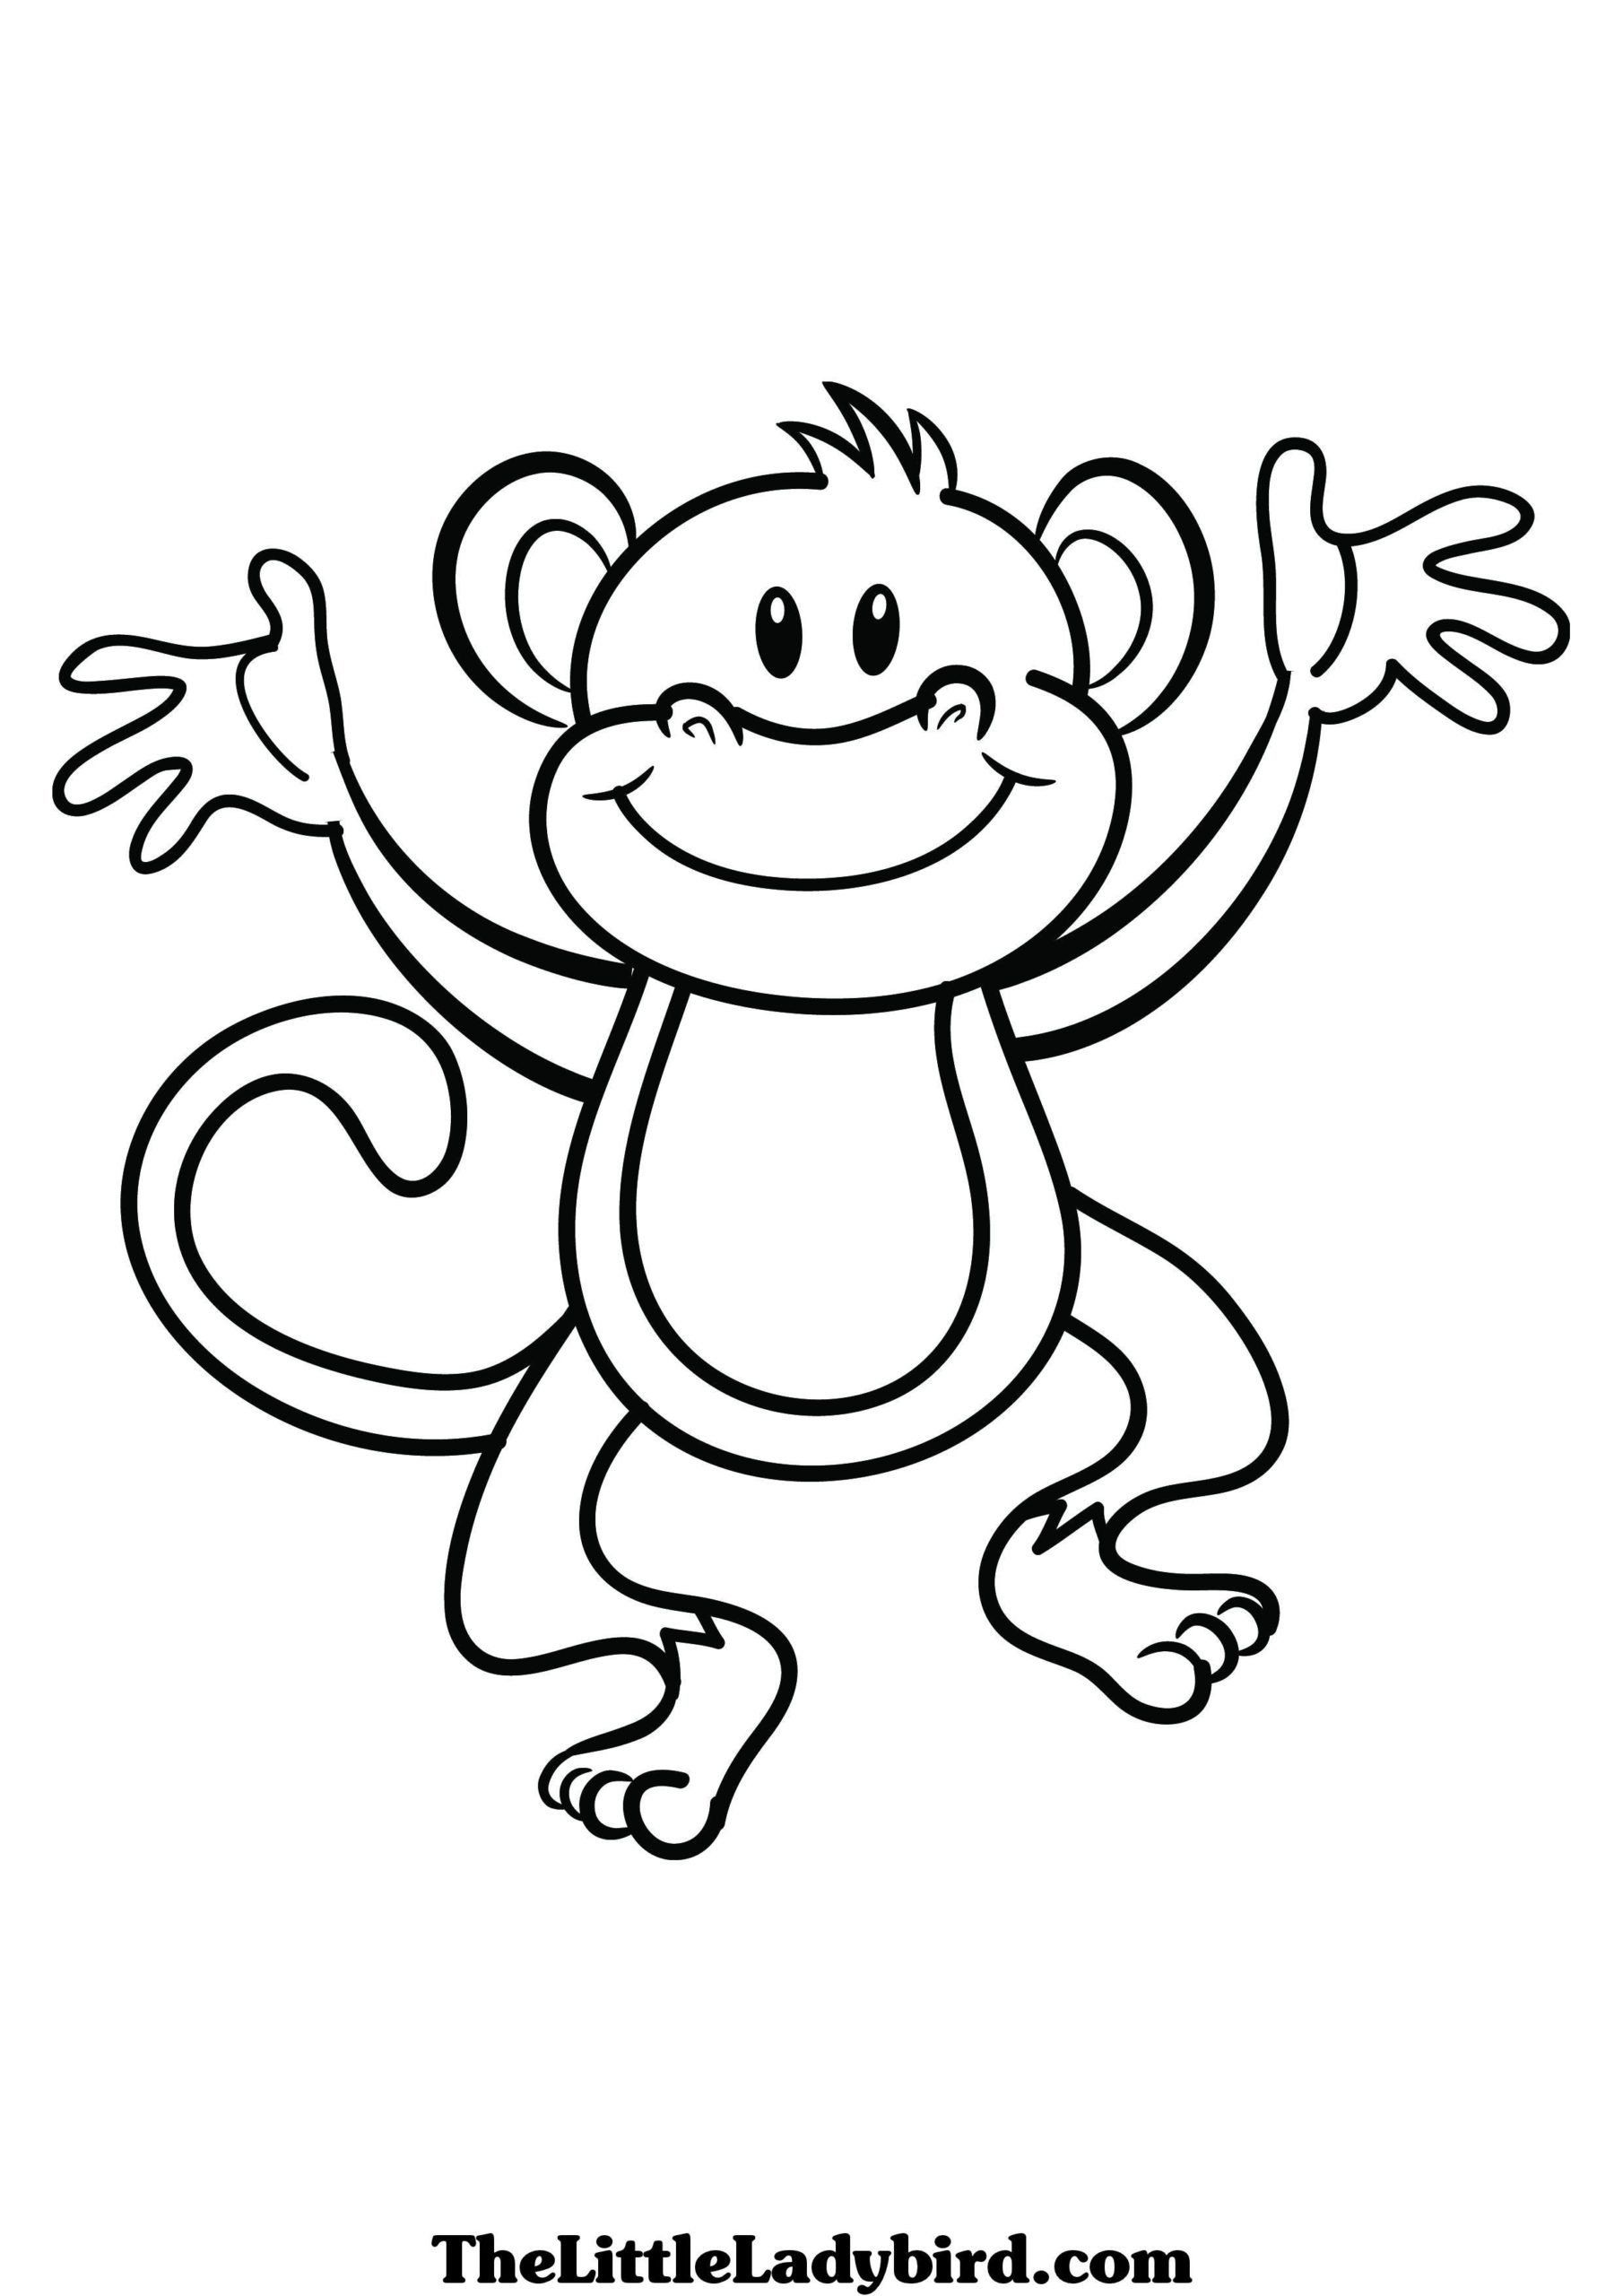 Large Coloring Books For Toddlers Coloring Pages Monkey Coloring Free Books For Monkey Coloring Pages Animal Coloring Pages Toddler Coloring Book